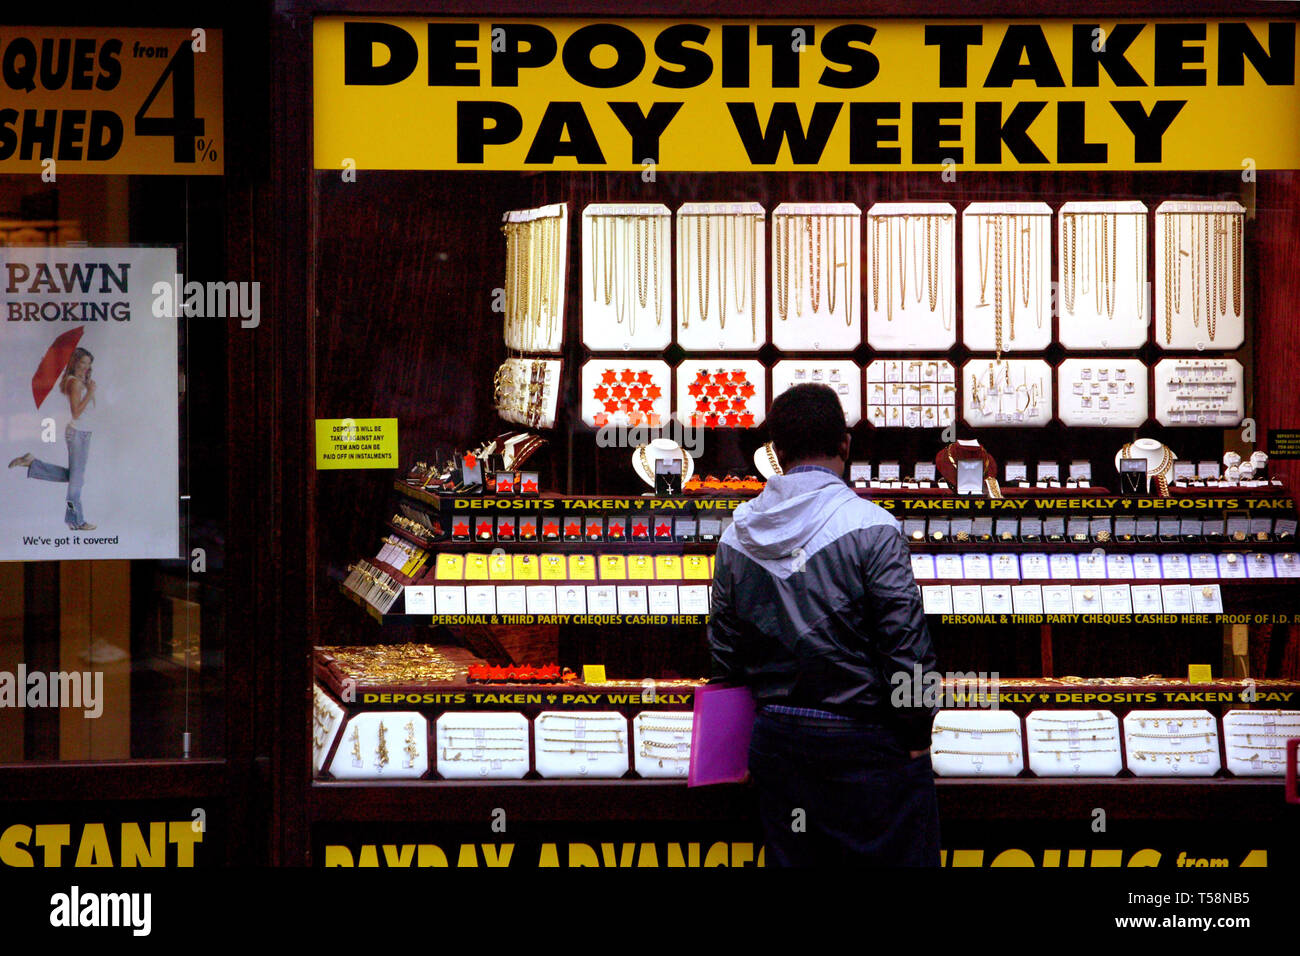 Pawnbroker, cheques cashed and speed loans. Wembley Central, London. 20/10/2008 - Stock Image